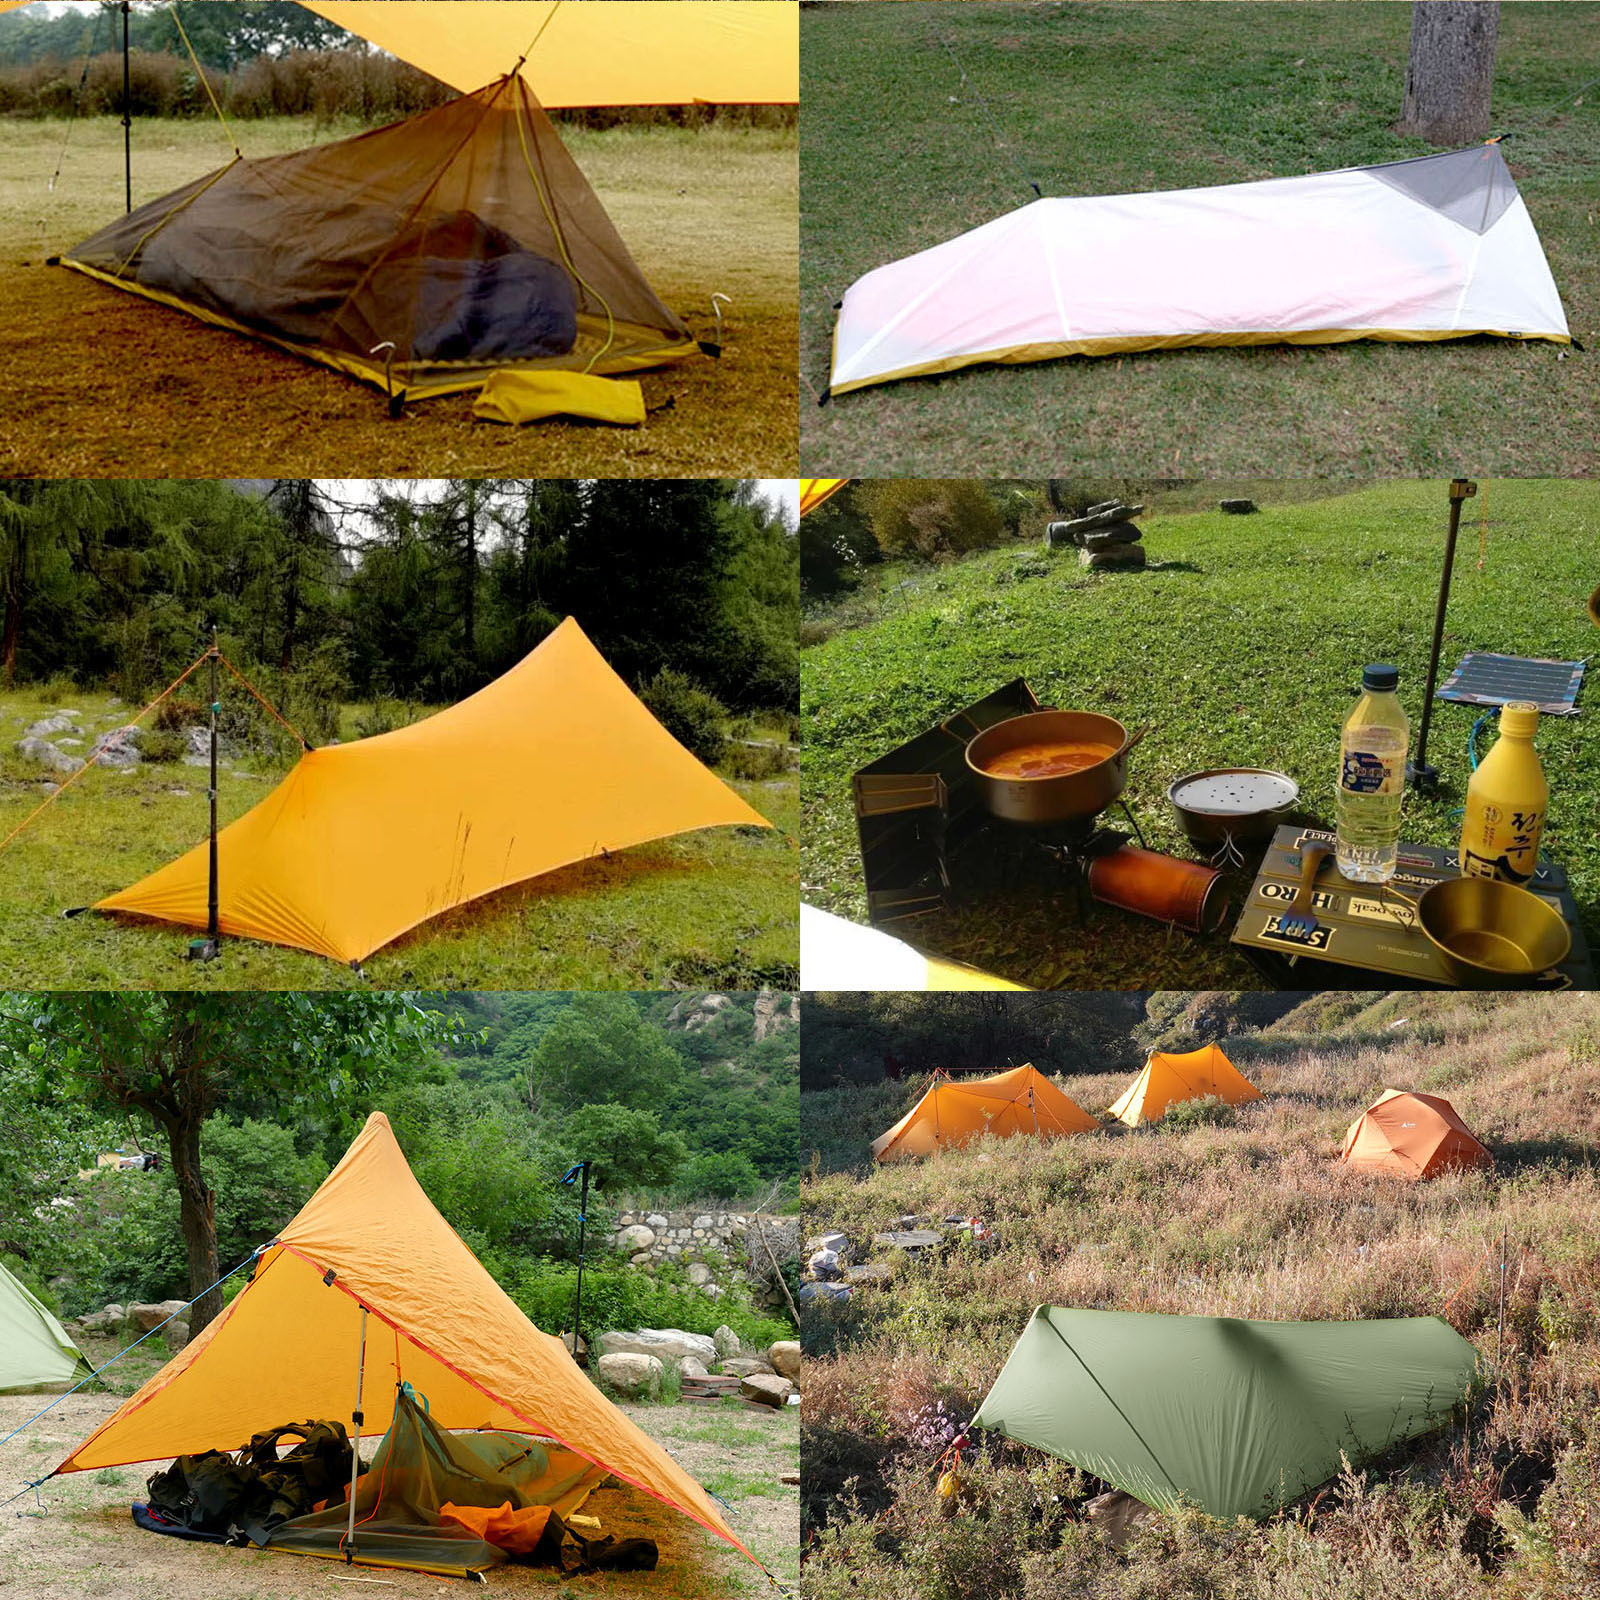 310g Ultralight Rain Fly Tent Tarp Waterproof 20D Two side Silicone Coated Nylon Camping Shelter Canopy